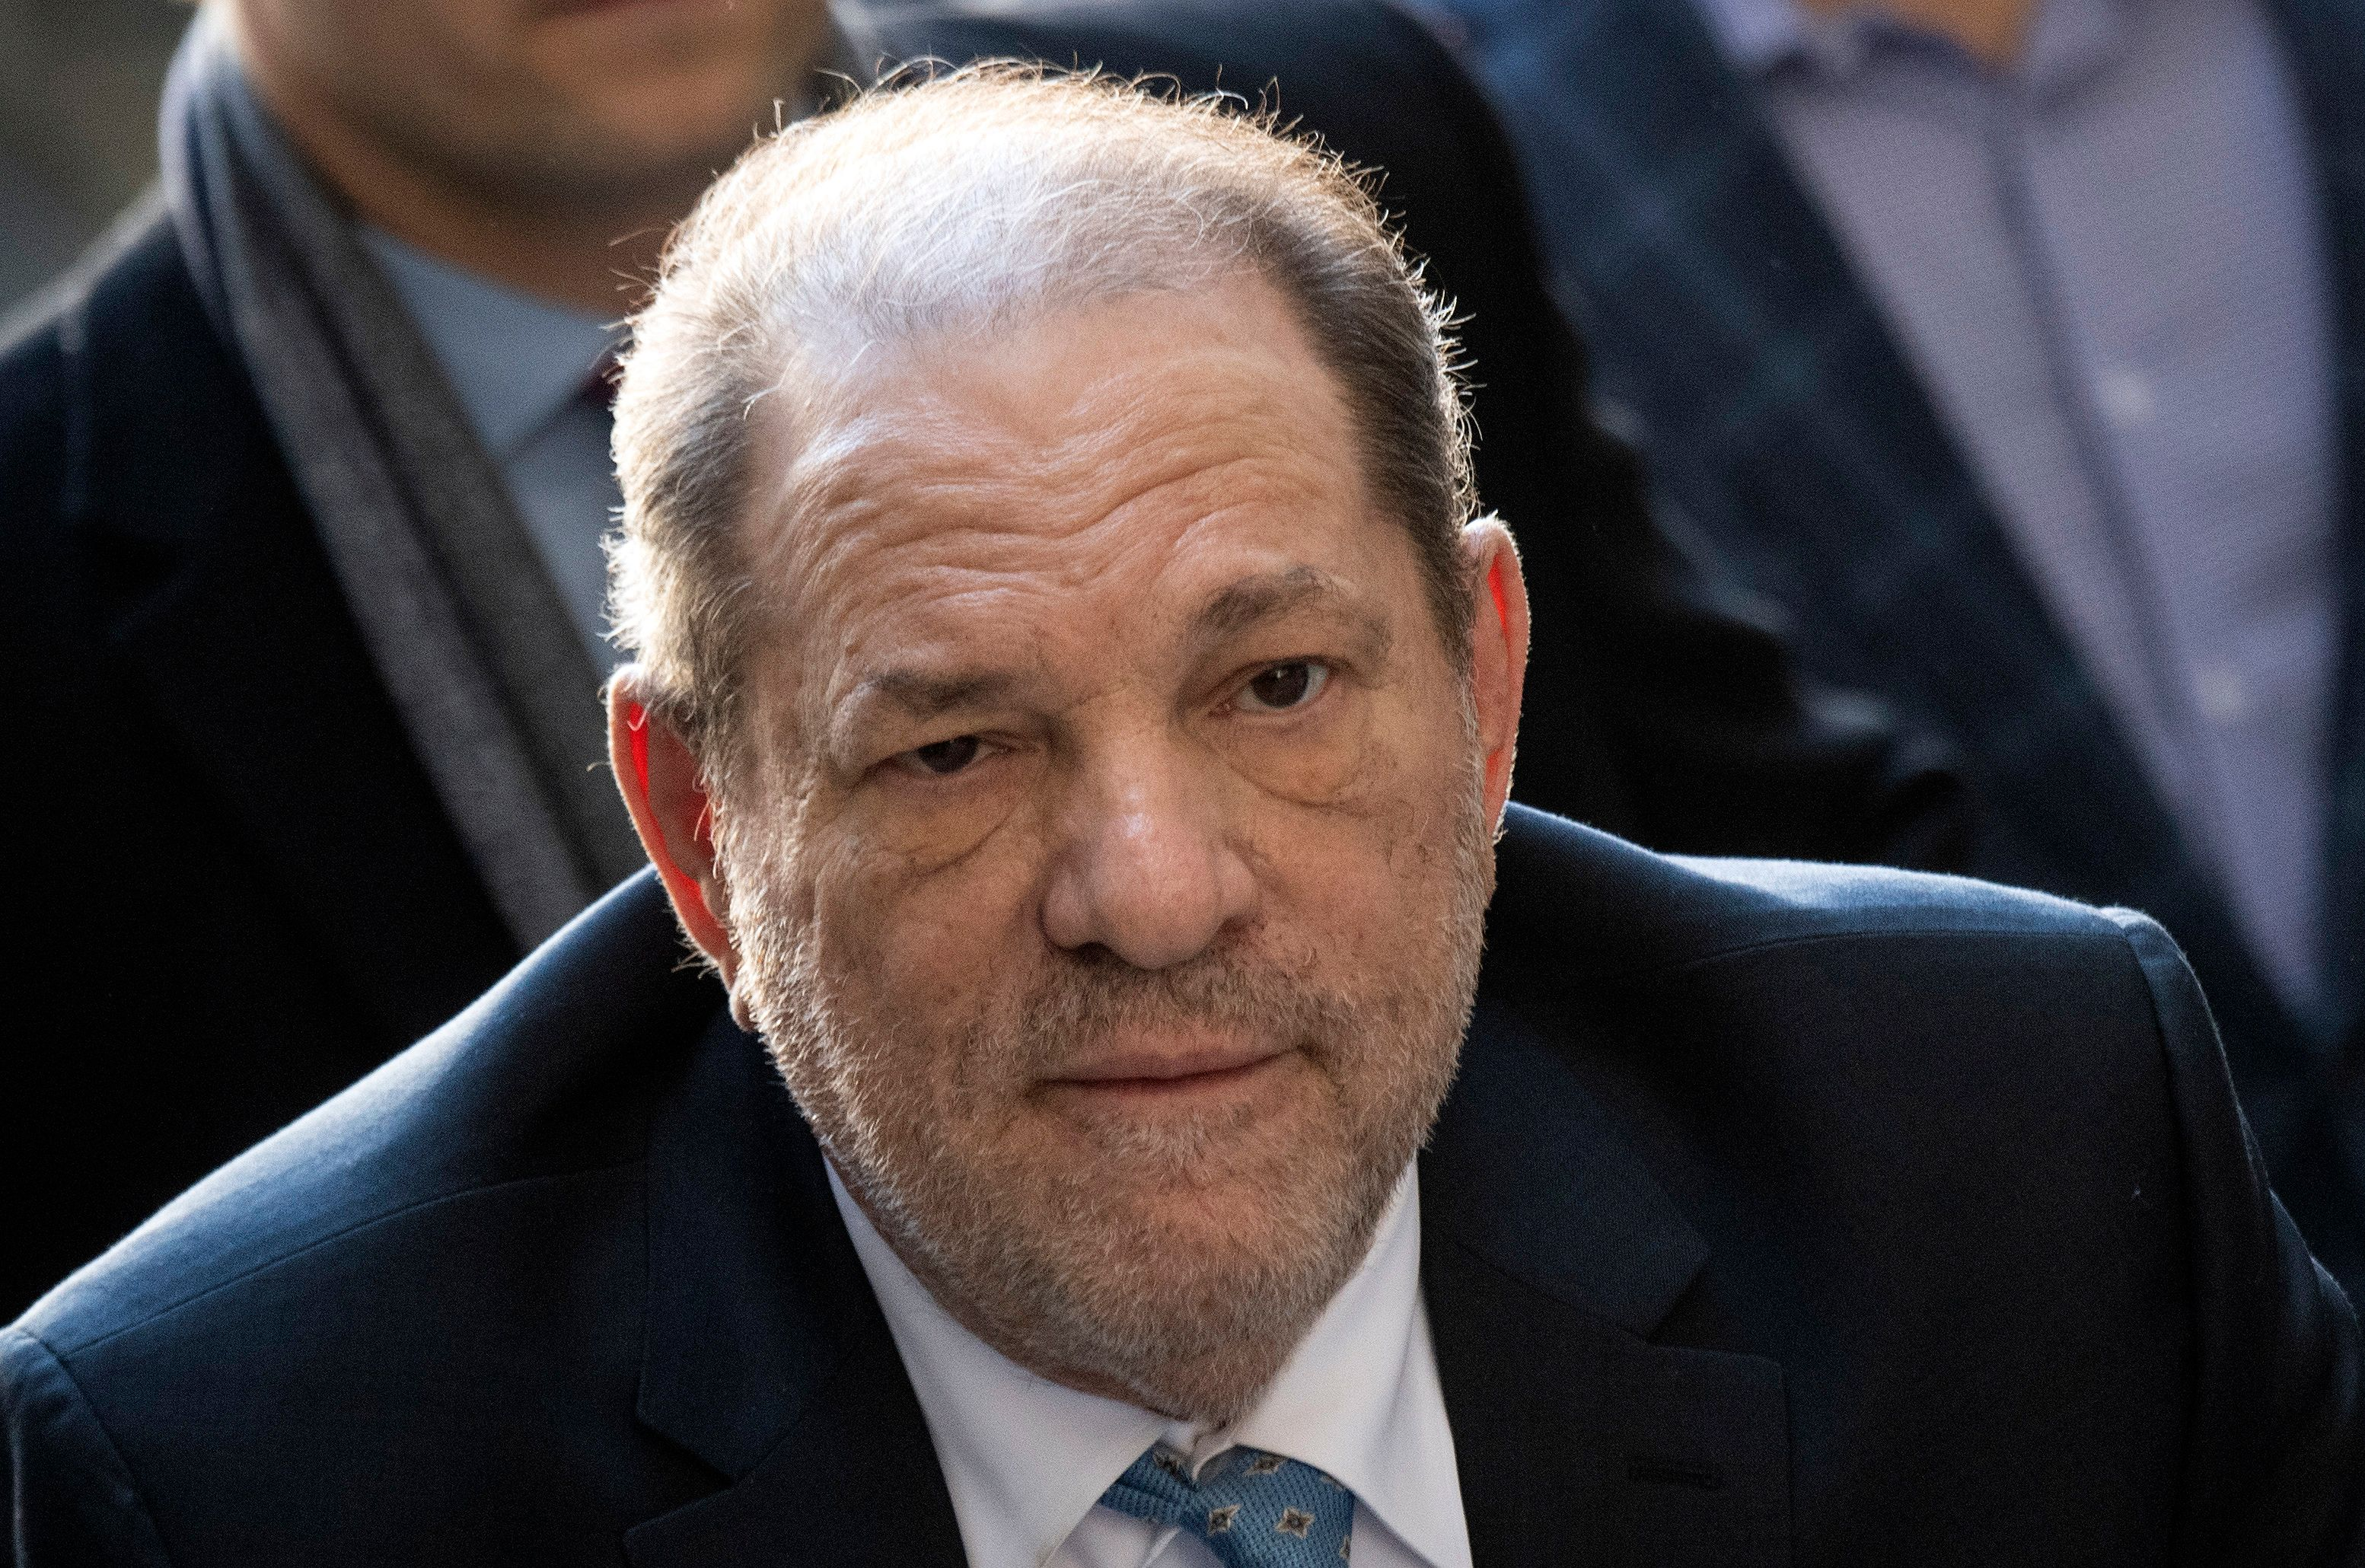 Harvey Weinstein at the Manhattan Criminal Court in New York, where he was convicted of rape, on February 24, 2020.